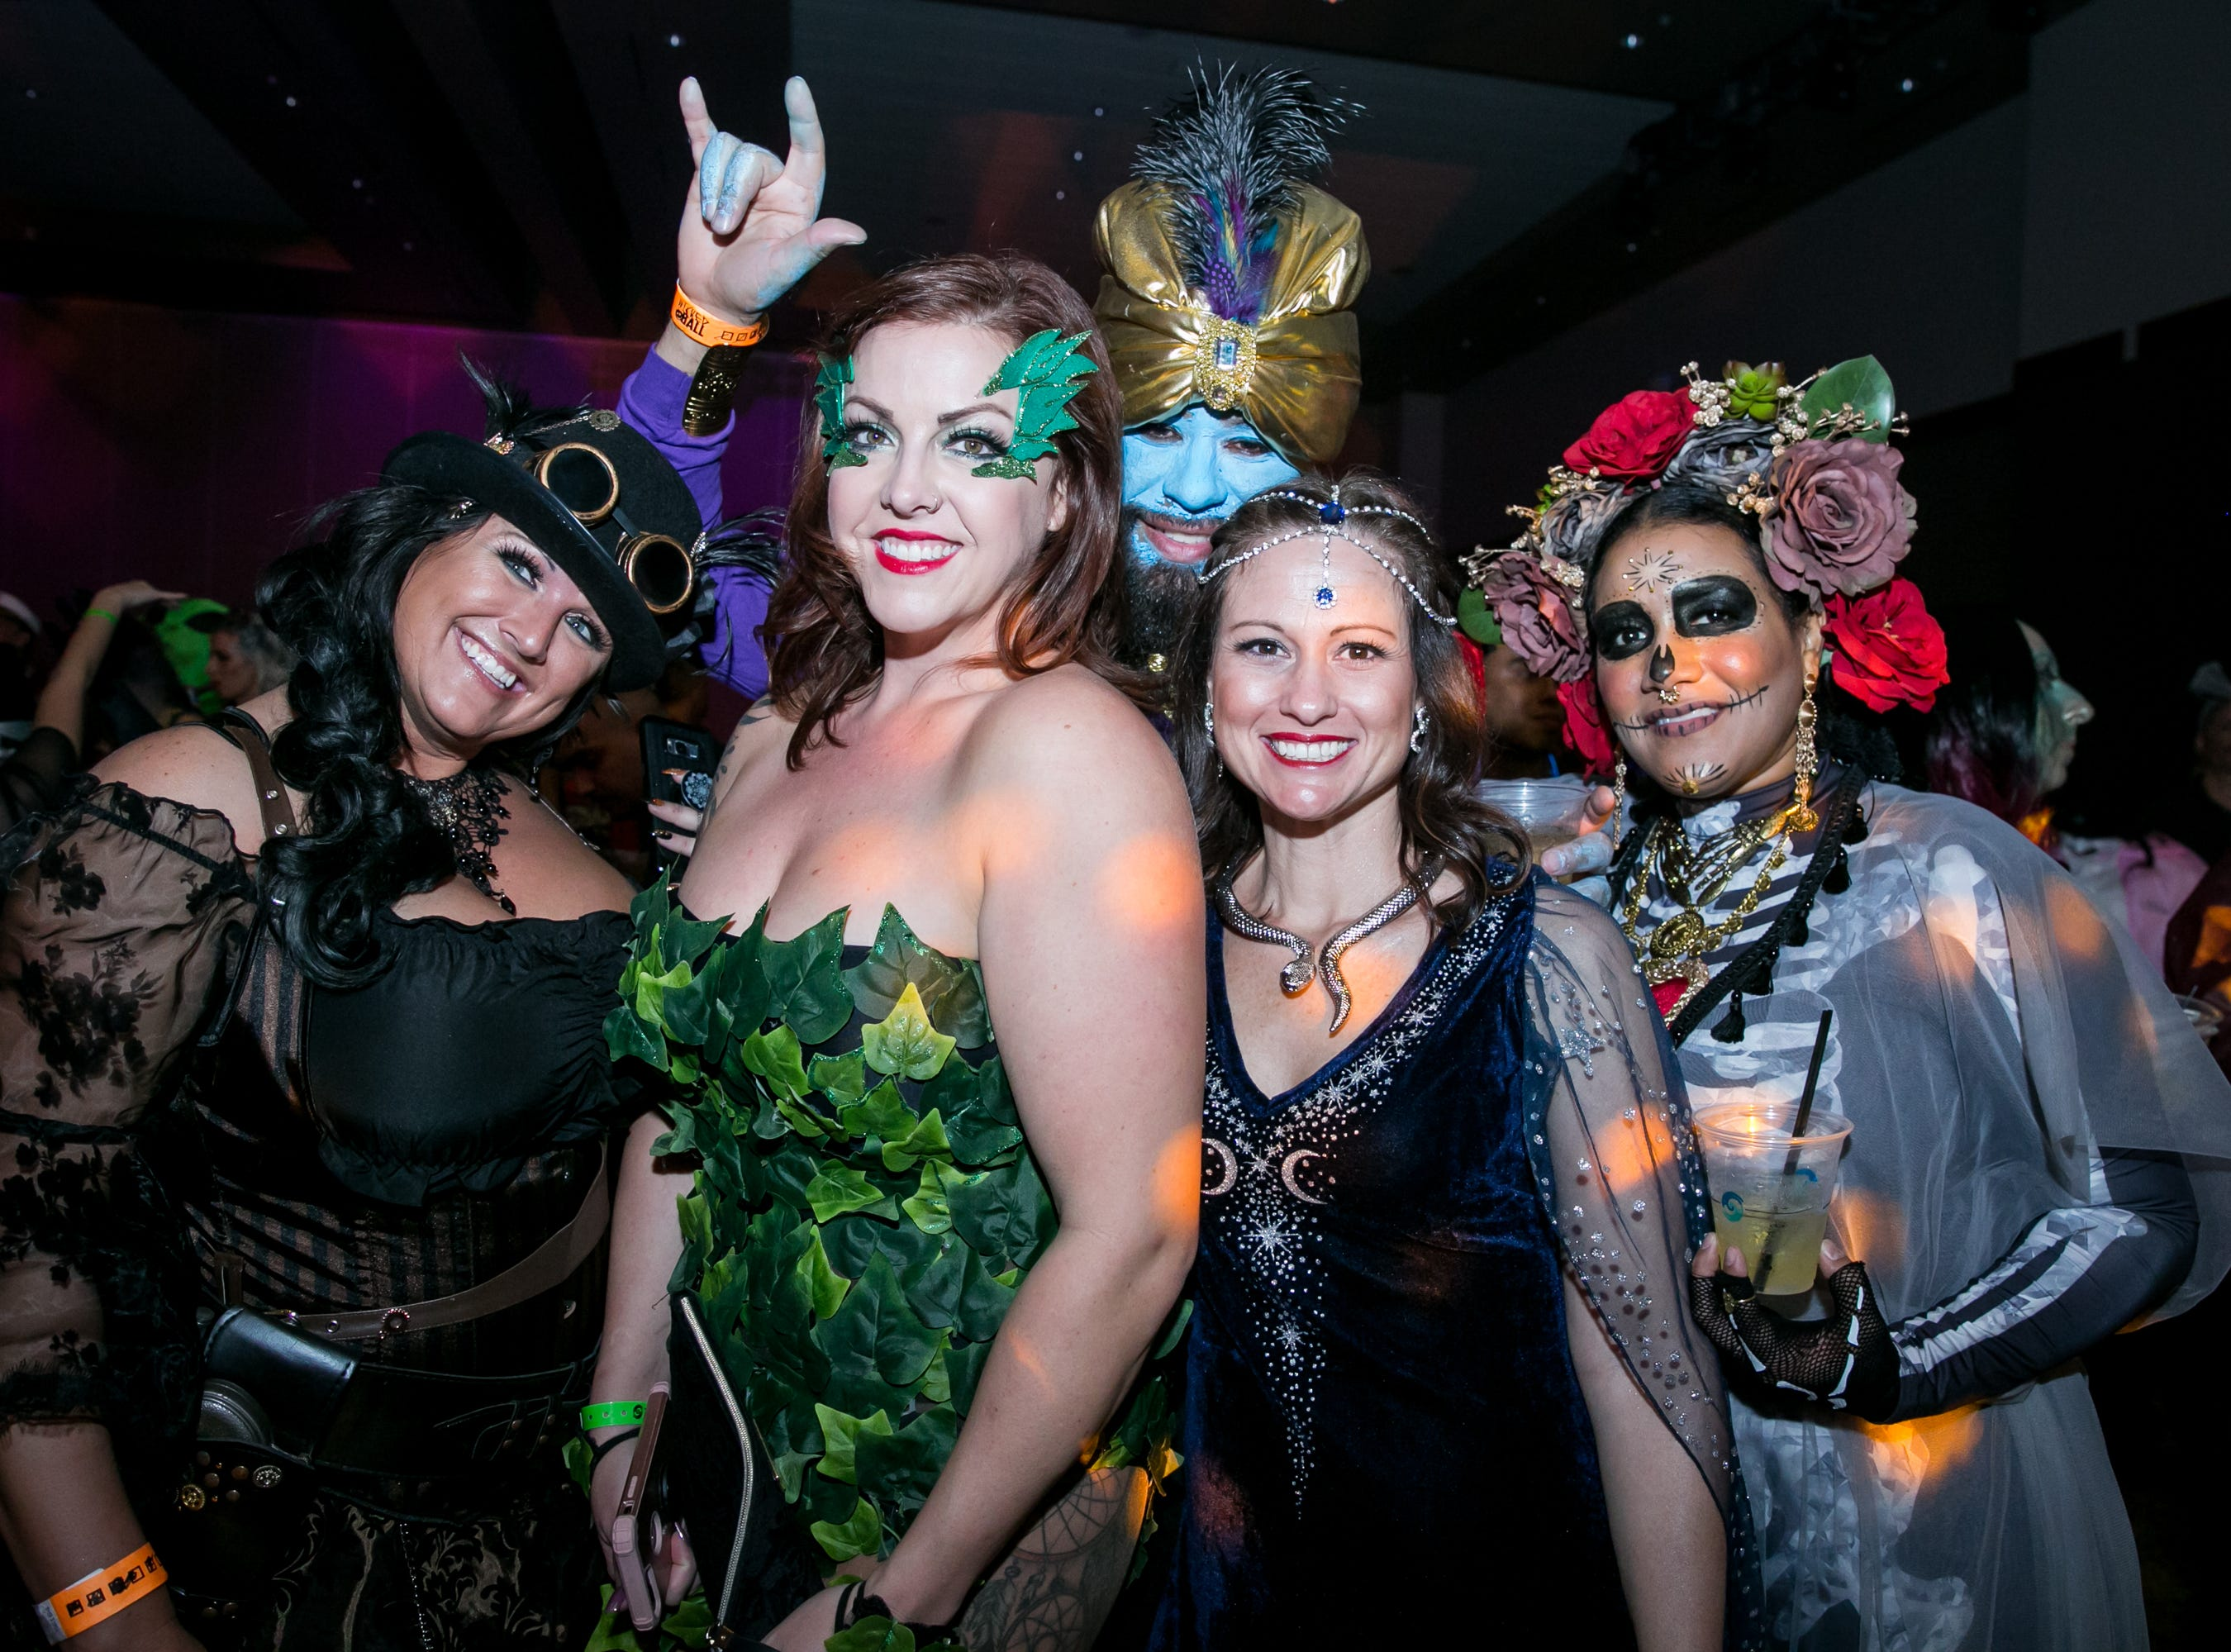 This group looked phenomenal during Wicked Ball at Talking Stick Resort on Saturday, October 27, 2018.